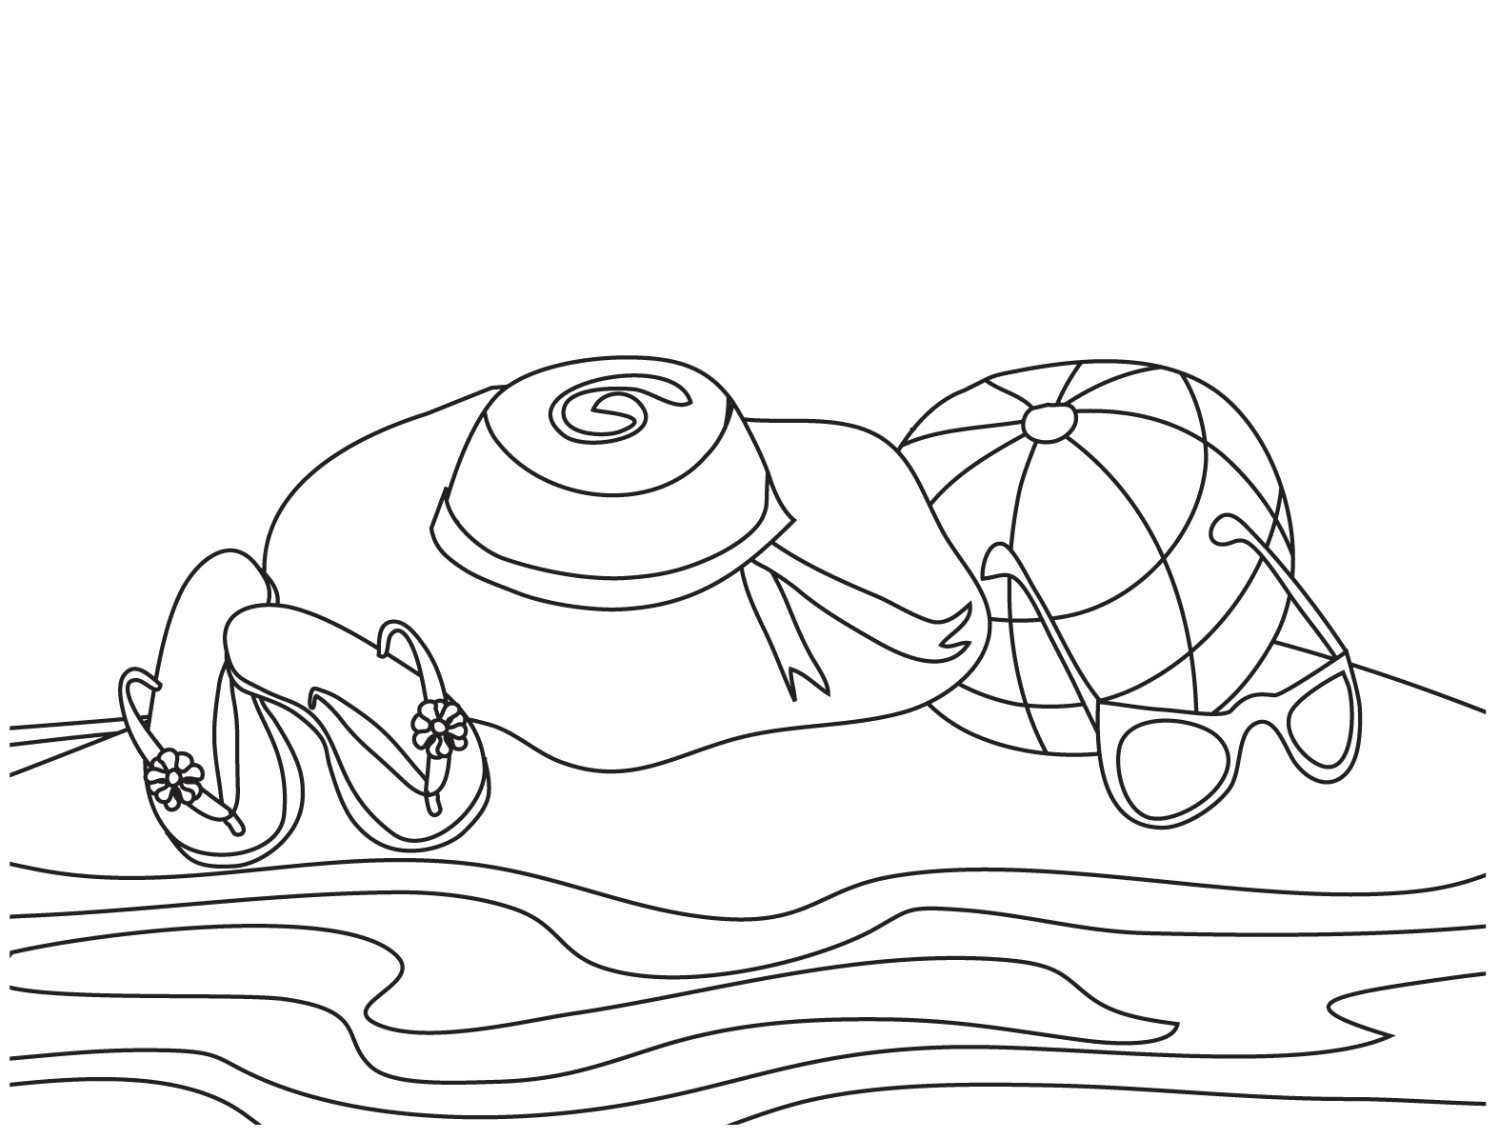 beach colouring page coloring pages beach sunset coloring pages at getcoloringscom free pages beach coloring colouring page